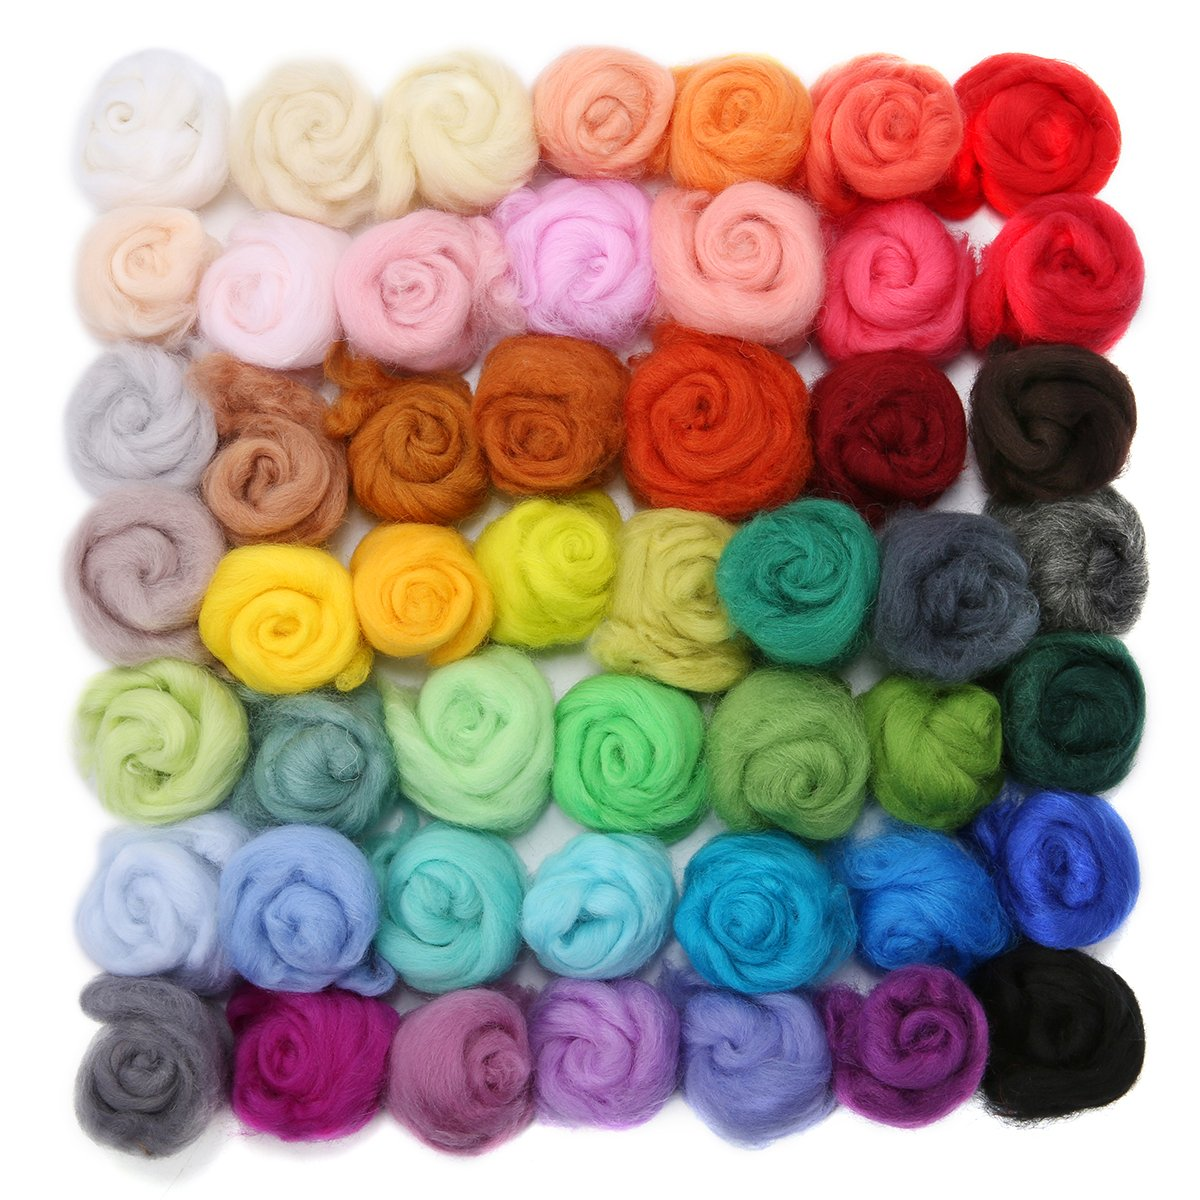 Jeteven 50 Colors Merino Wool Fibre Roving Spinning Sewing Trimming For Needle Felting DIY Craft (5g per color) JETEVENLorvsap1749